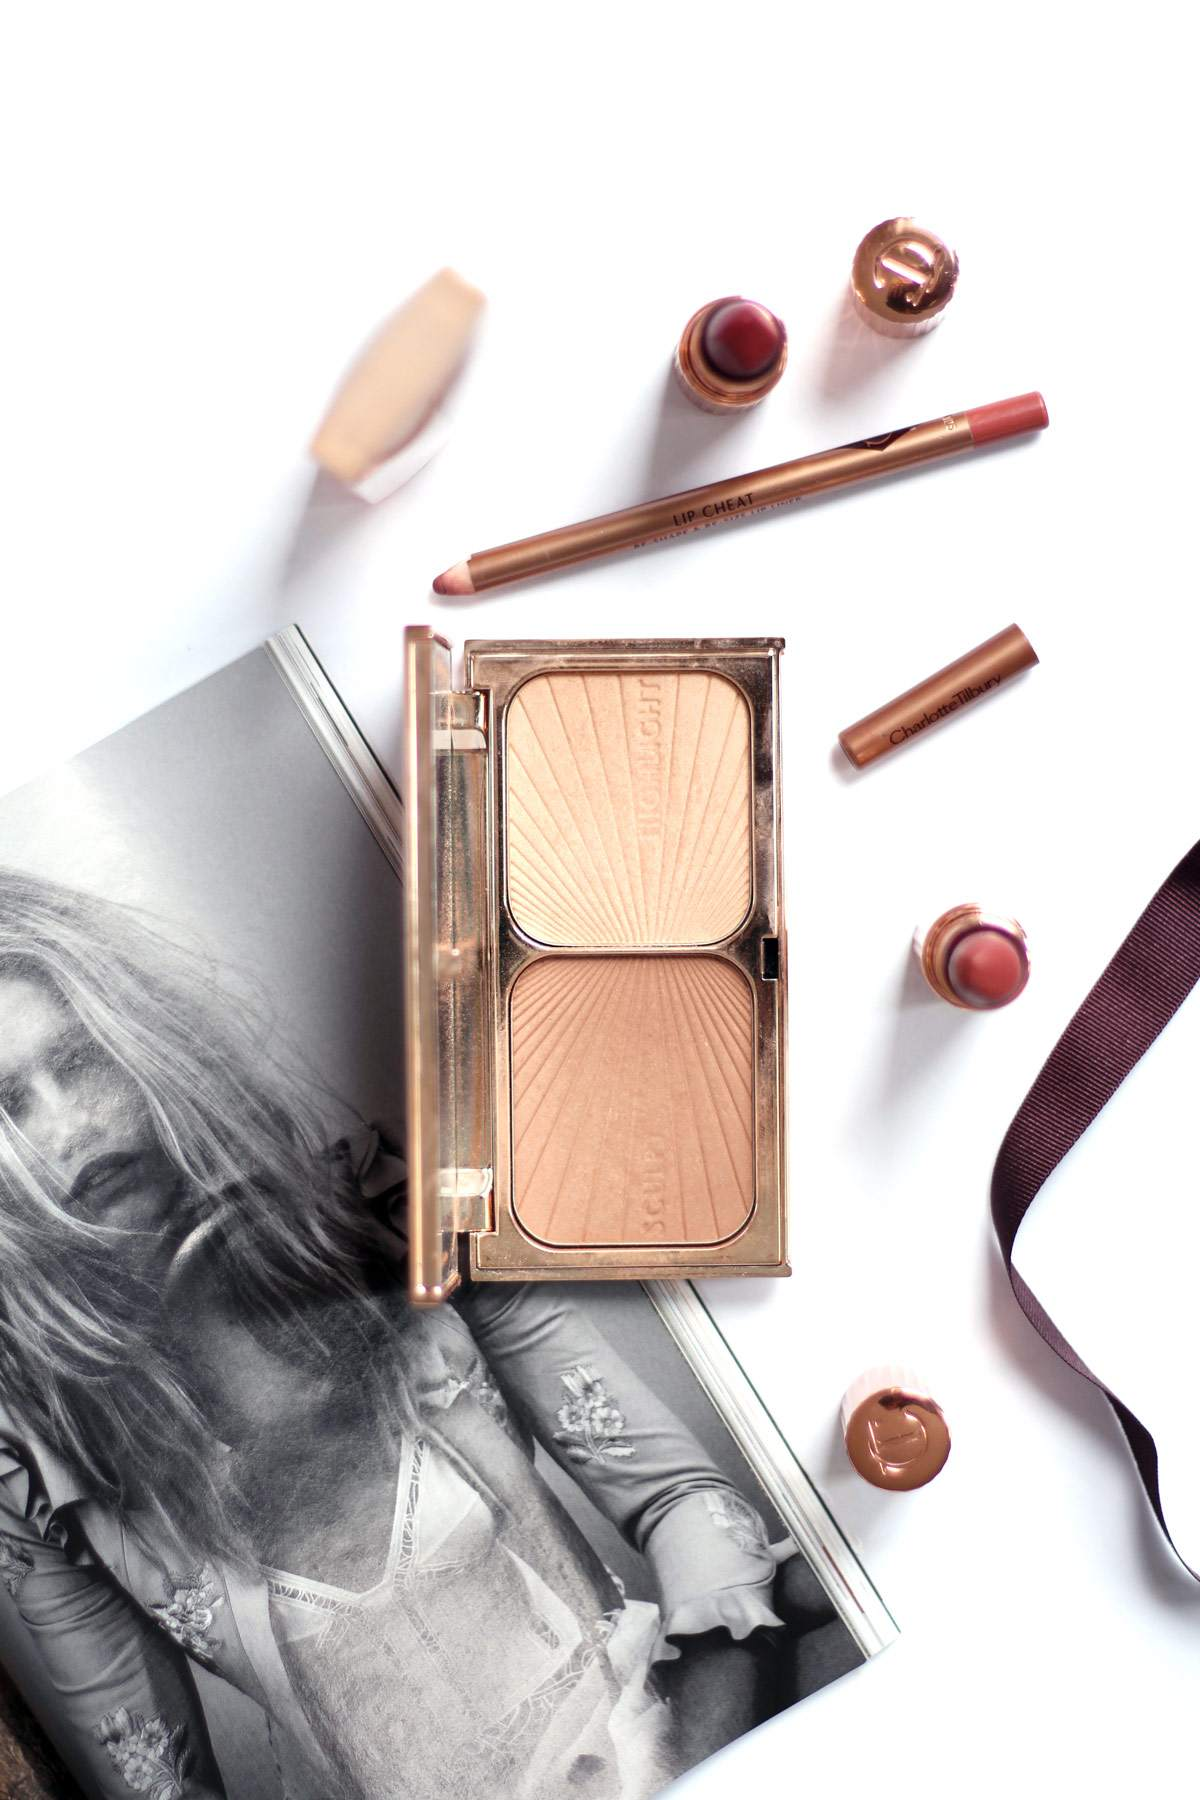 charlotte-tilbury-wonder-glow-stoned-love-walk-of-shame-lipstick-filmstar-bronze-and-glow-pillowtalk